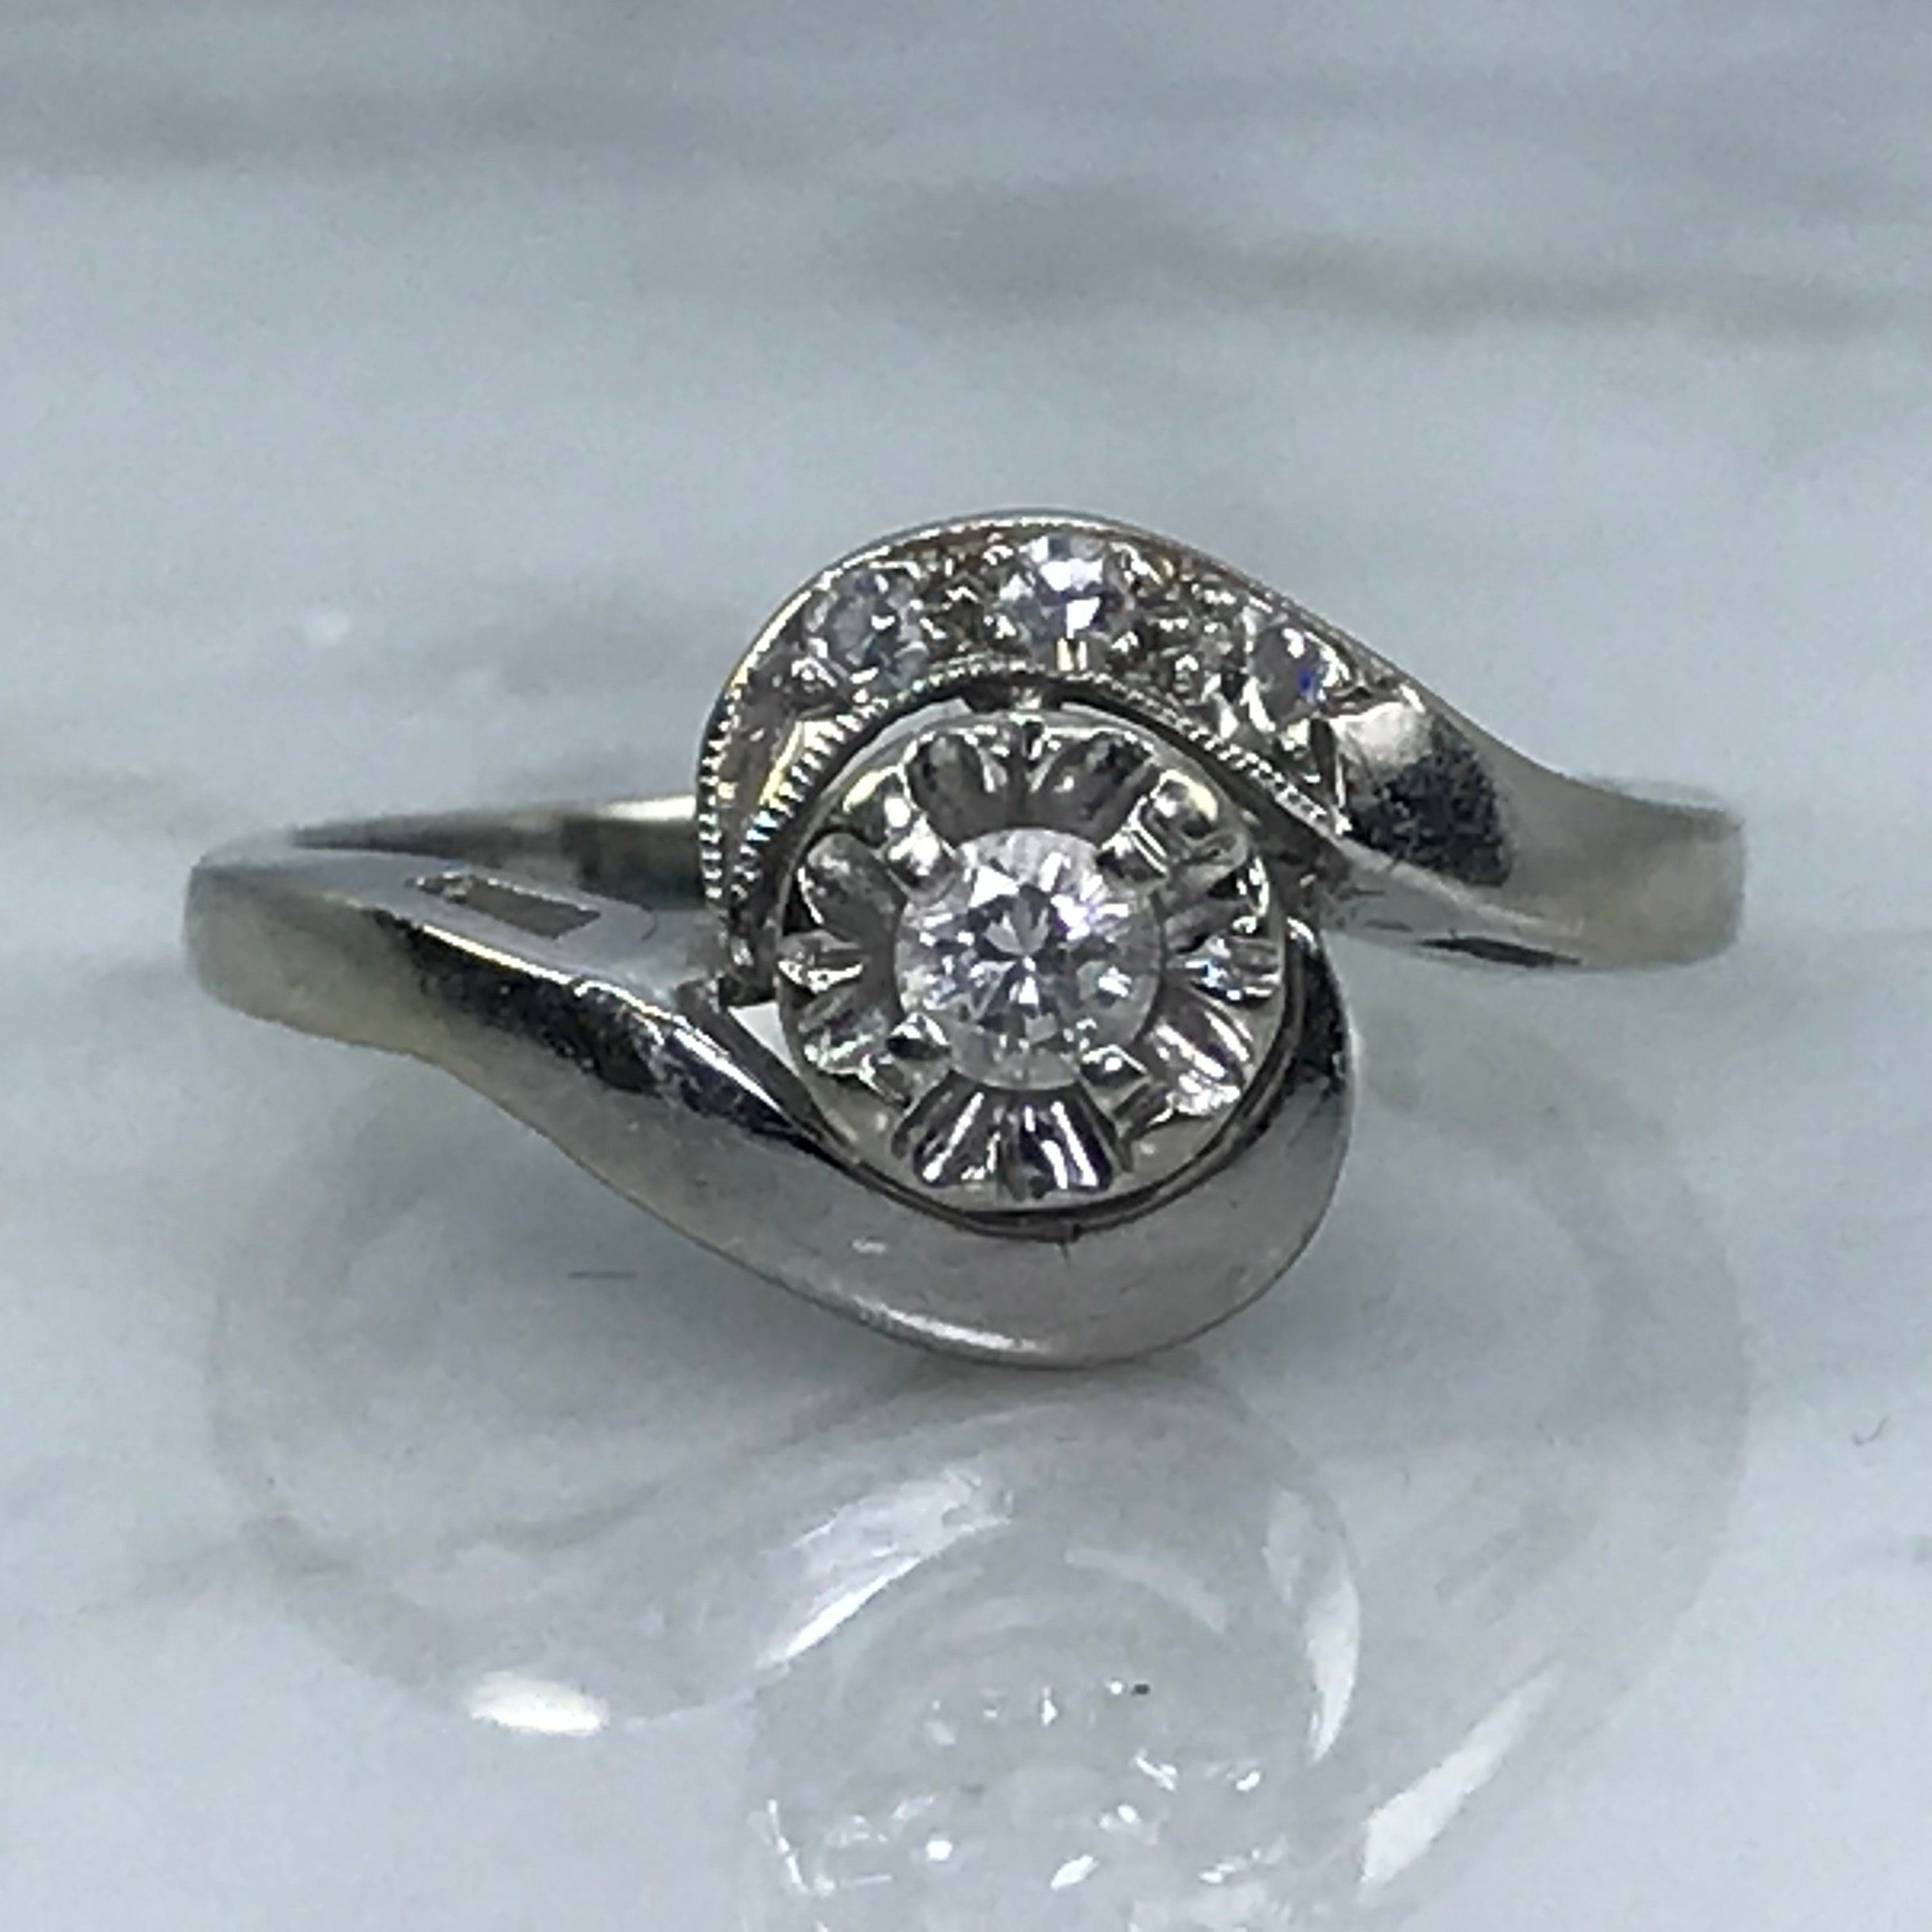 Art Deco Diamond Engagement Ring In 14k White Gold April Birthstone 10 Year Anniversary Gift Vintage Diamond Vintage Engagement Rings 10 Year Anniversary Gift